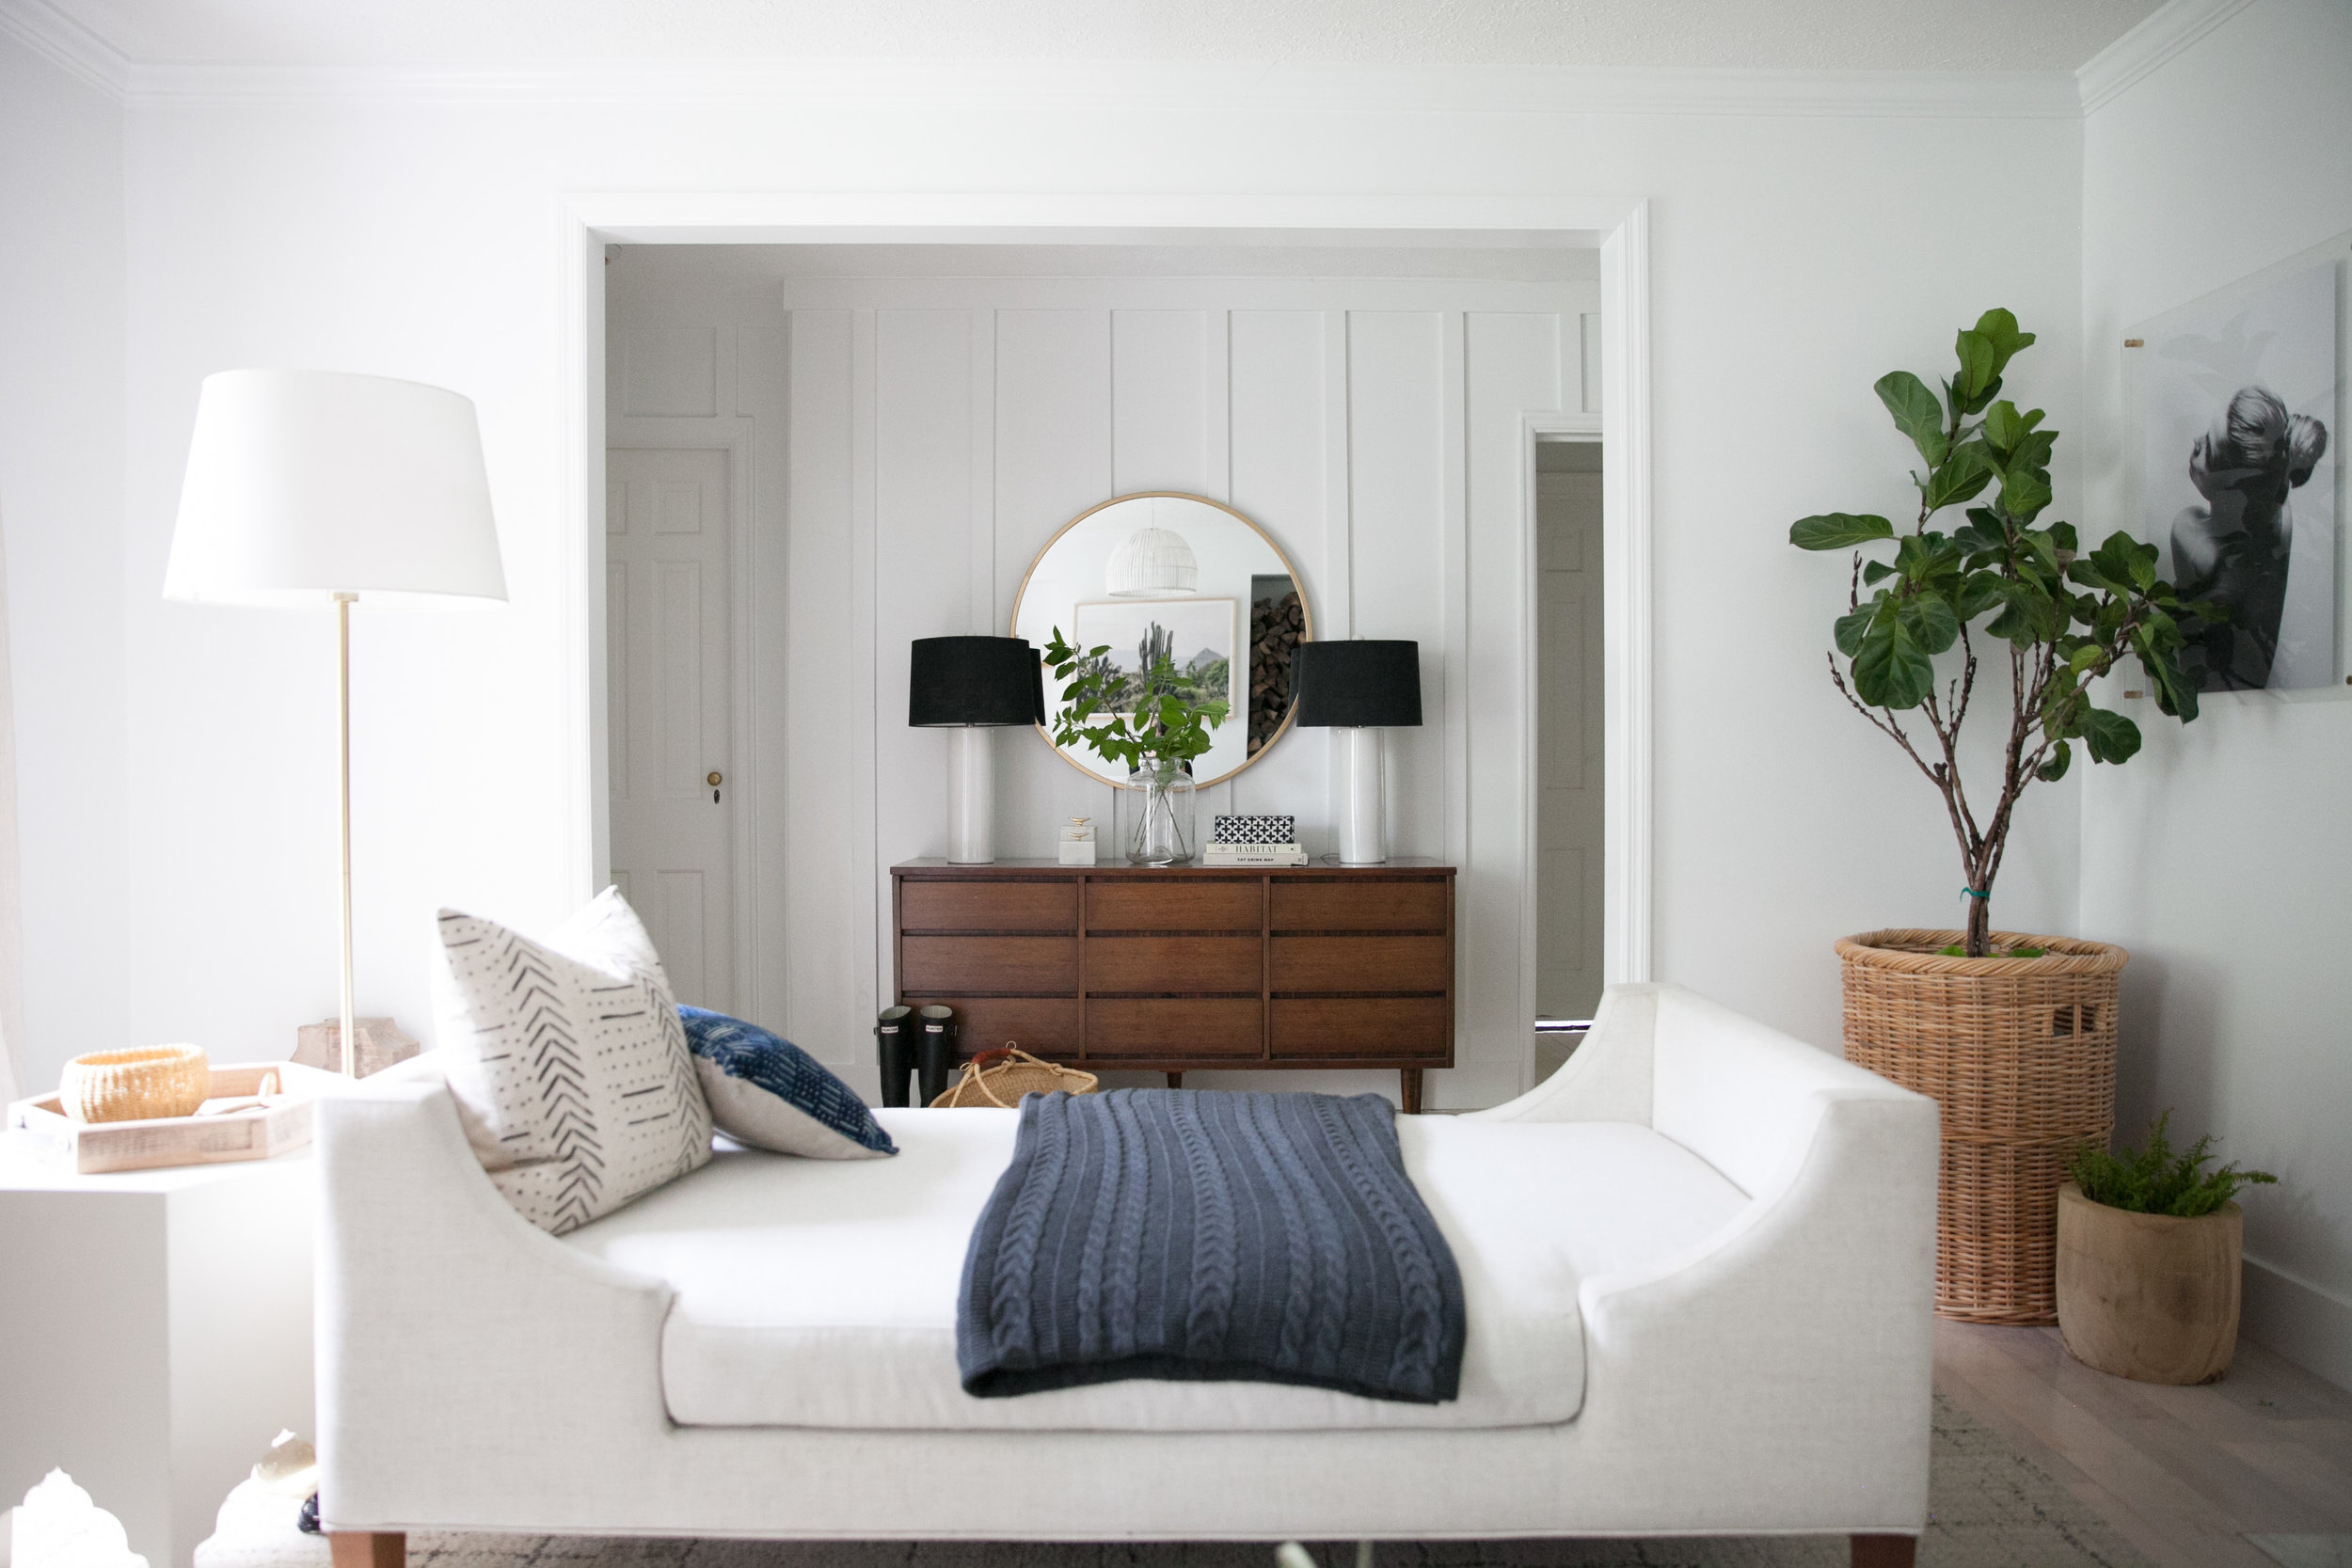 LisaDiederichPhotography_HouseSevenDesign_ApartmentTherapy_Blog-11.jpg